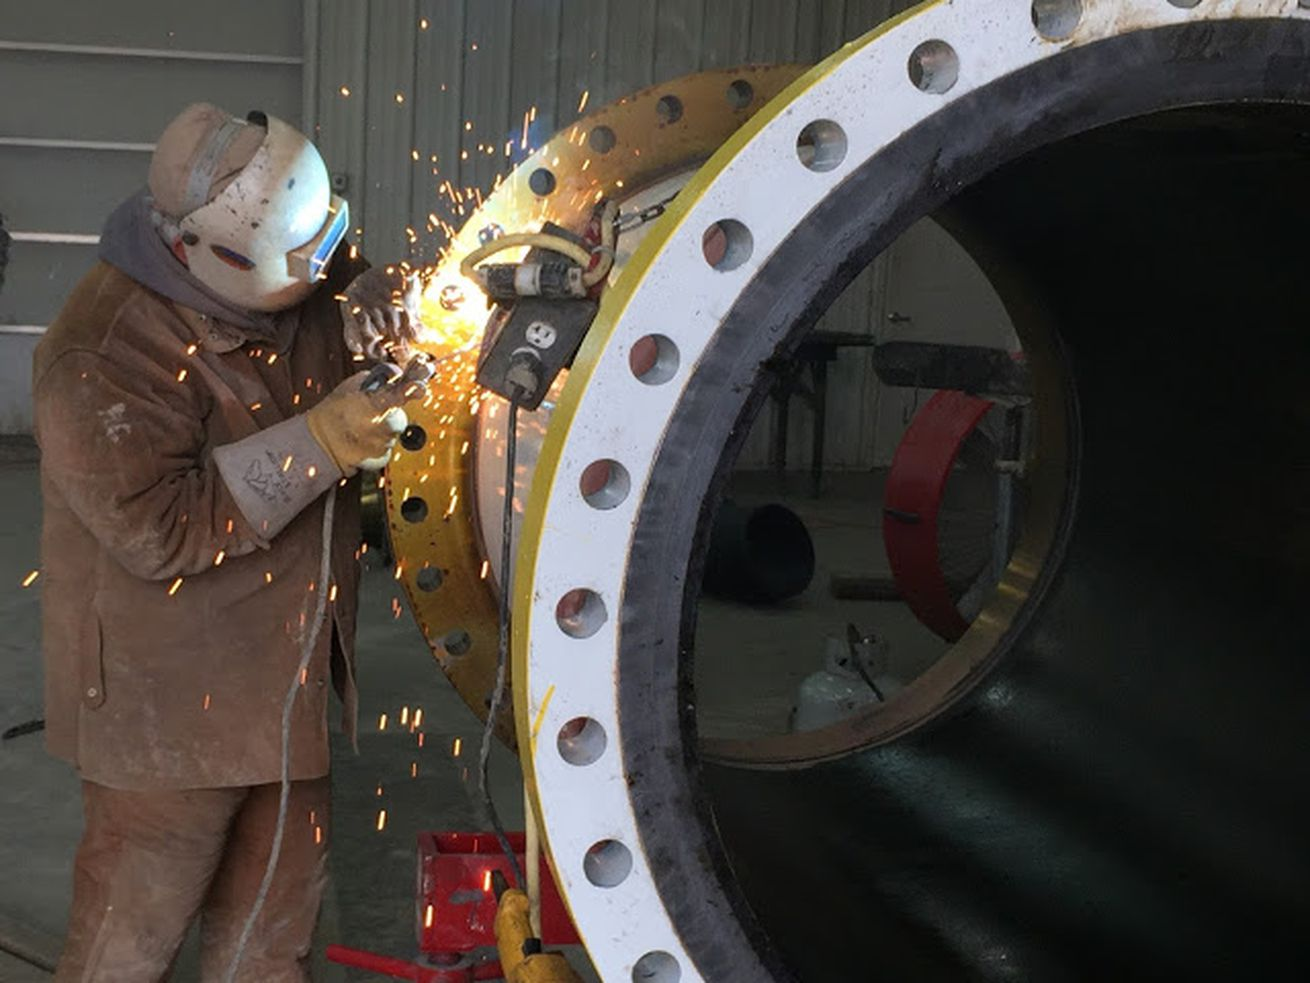 A worker from Folz Welding repairs an oil pipeline in Patoka, Illinois in 2016.